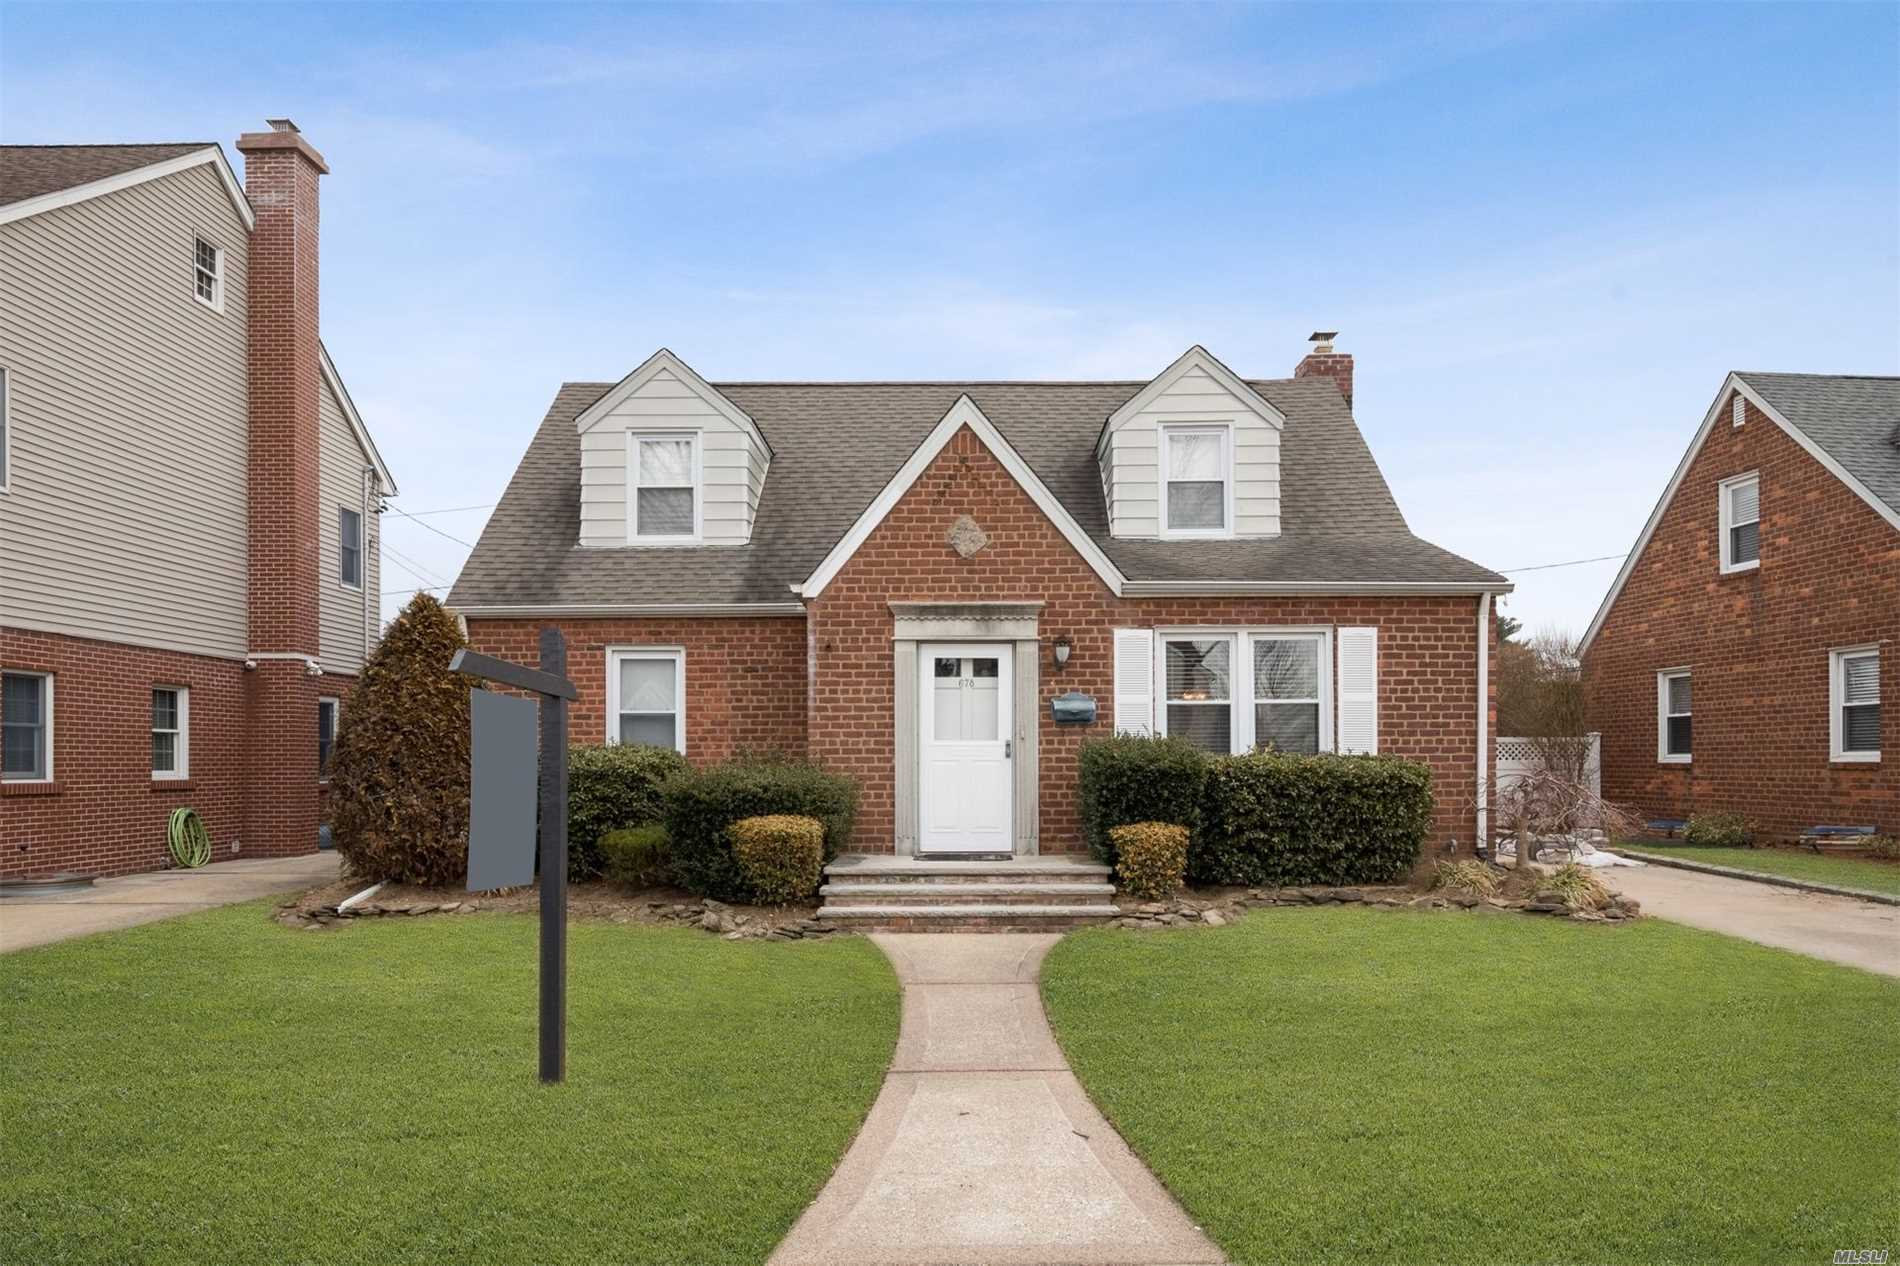 Welcome Home To This Expanded Brick Cape, Close To All, Public Transportation, Shopping, Shelter Rock Public Library, Herricks School District & Much More, New Finished Basement, Hardwood Floors, Large Bedrooms, Many Updates Throughout The Home, Hurry And Don't Miss Out On This One--Will Not Last!!